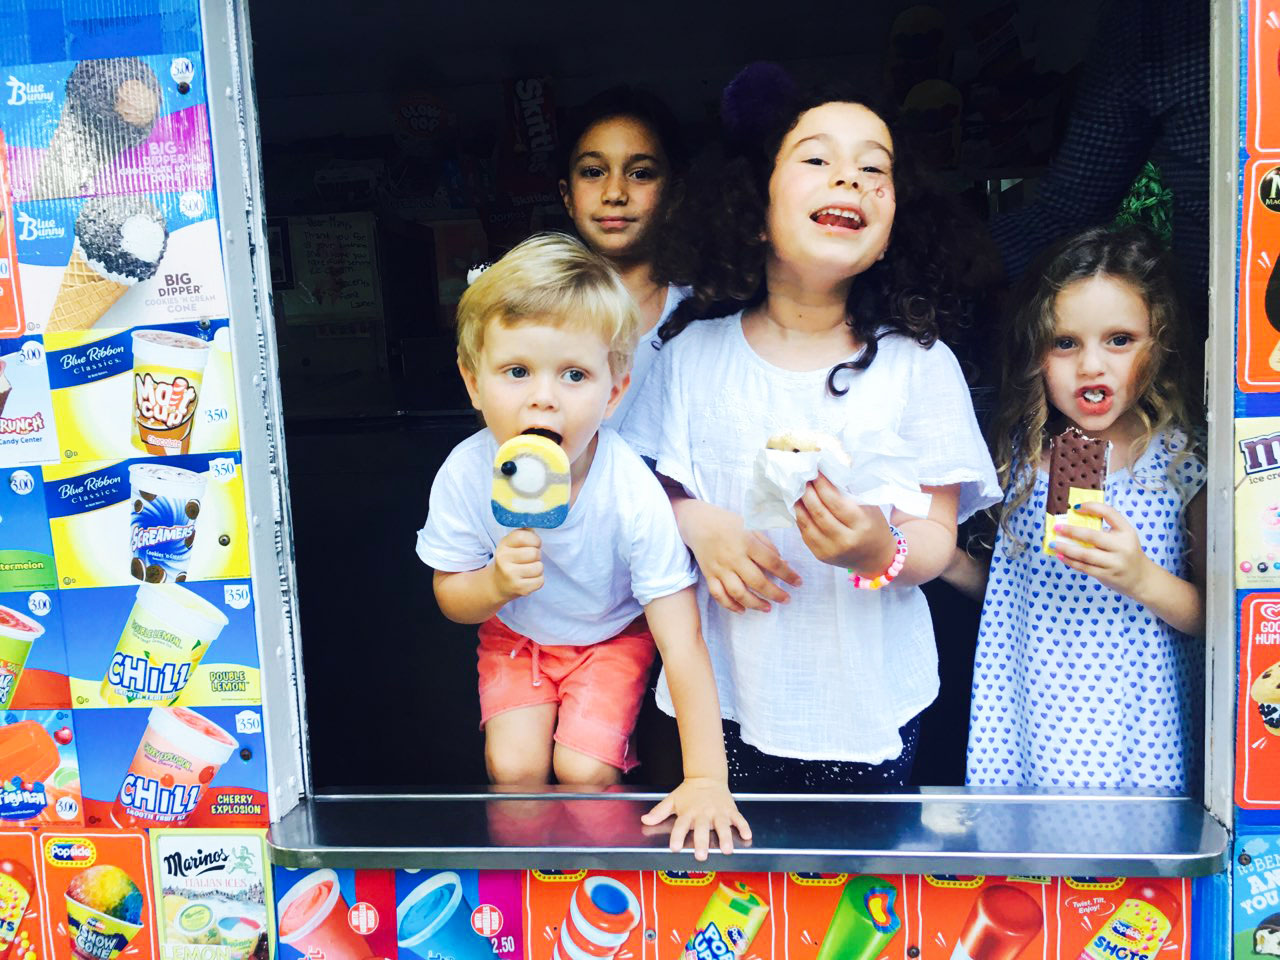 Ice cream for fun truck - new york - party - events - photo gallery 2